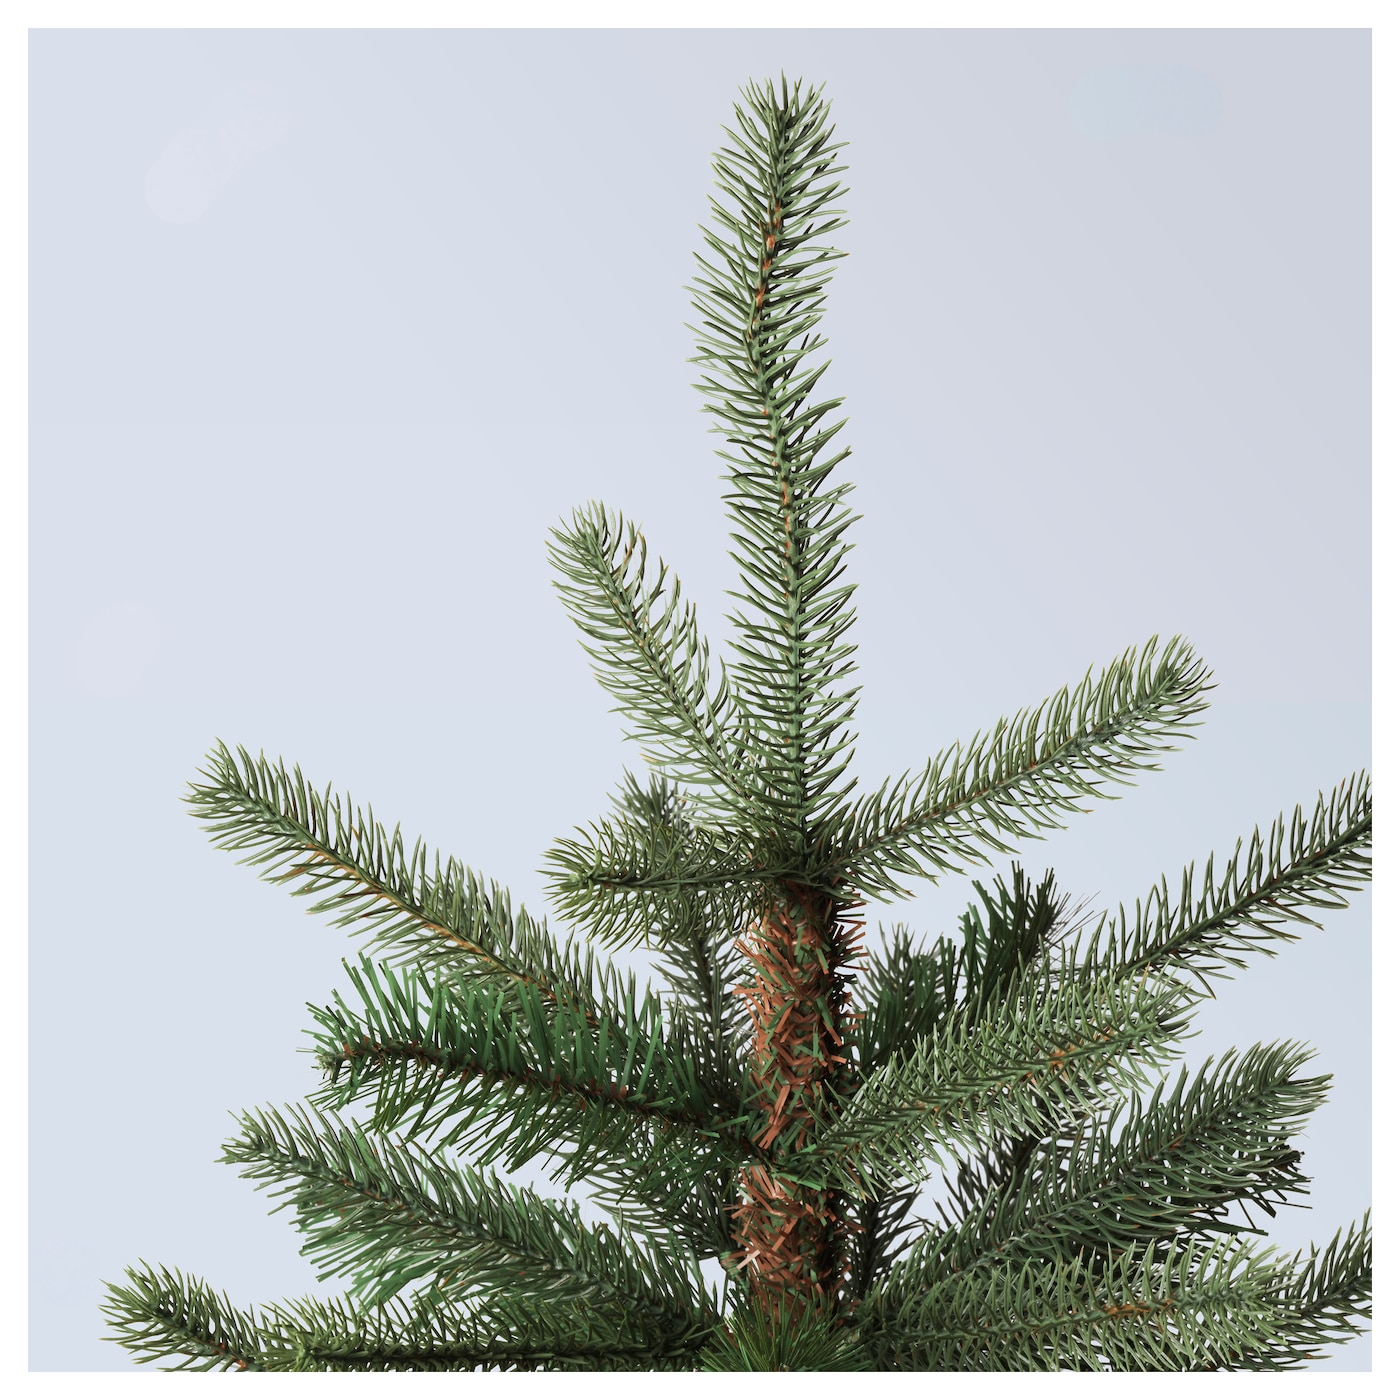 IKEA FEJKA artificial plant A perfect Christmas tree if you don't want to clean up fallen needles.